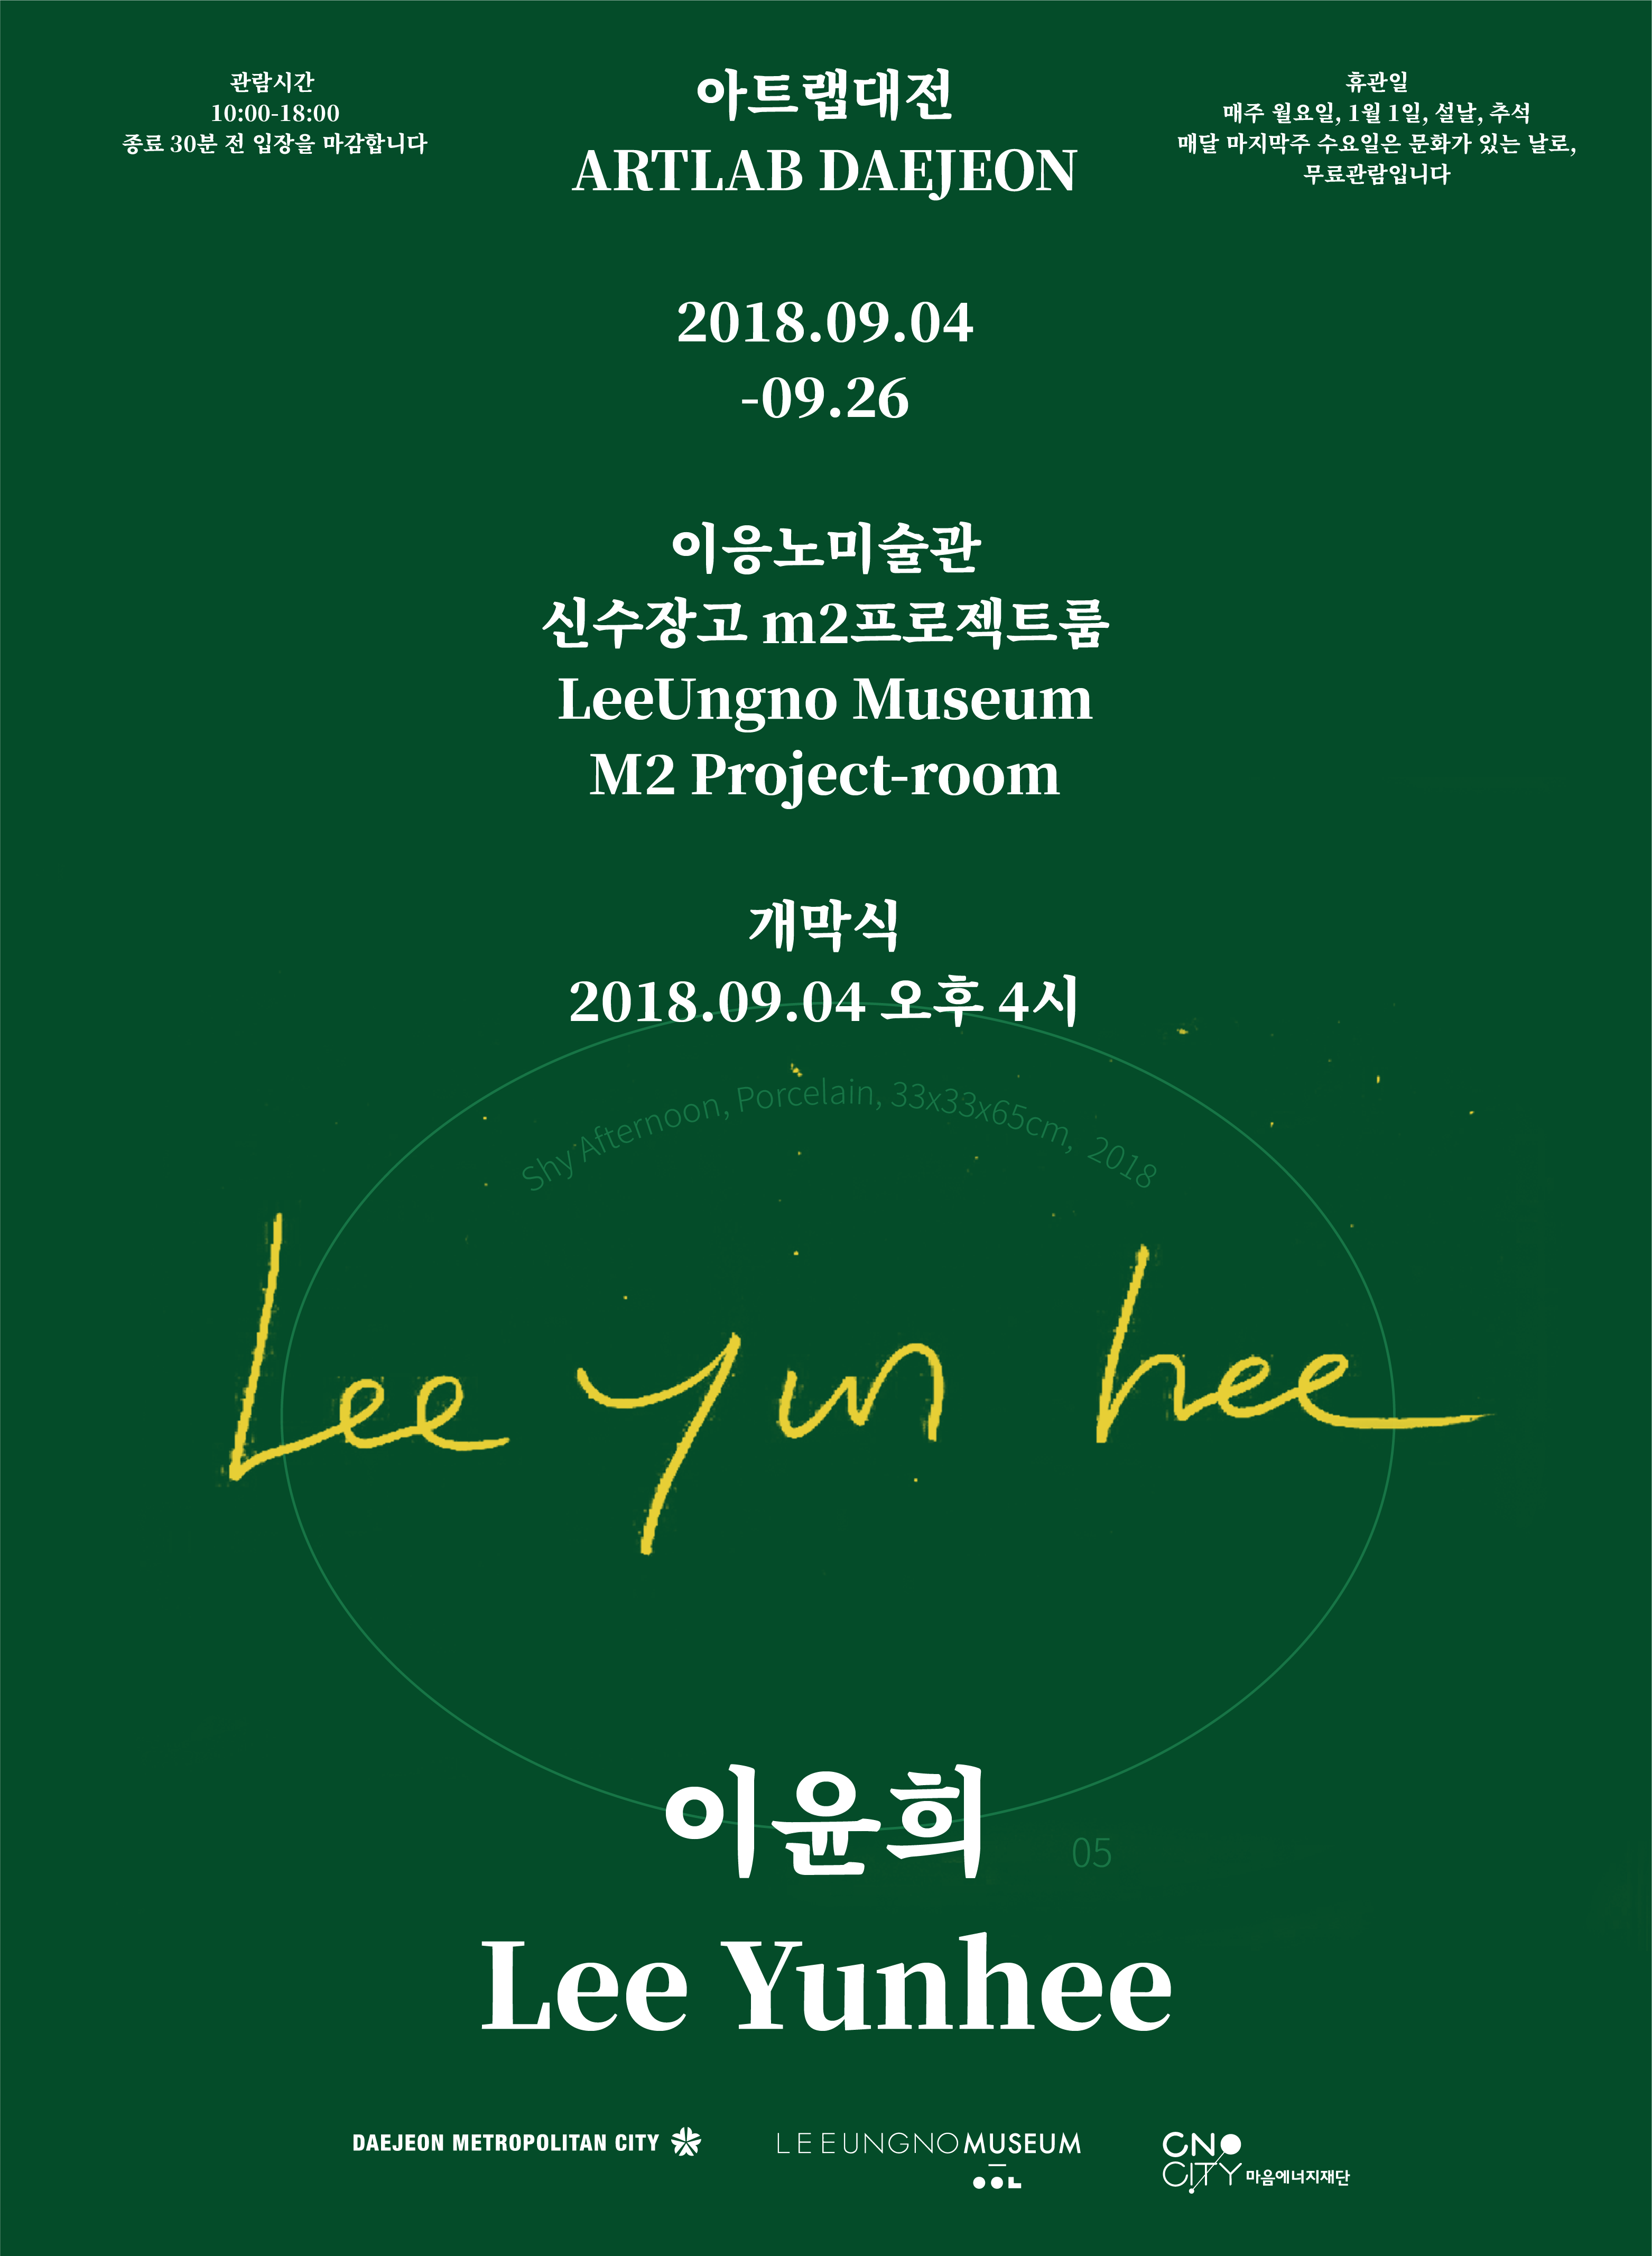 2018 ARTLAB DAEJEON : September, Lee Yun Hee